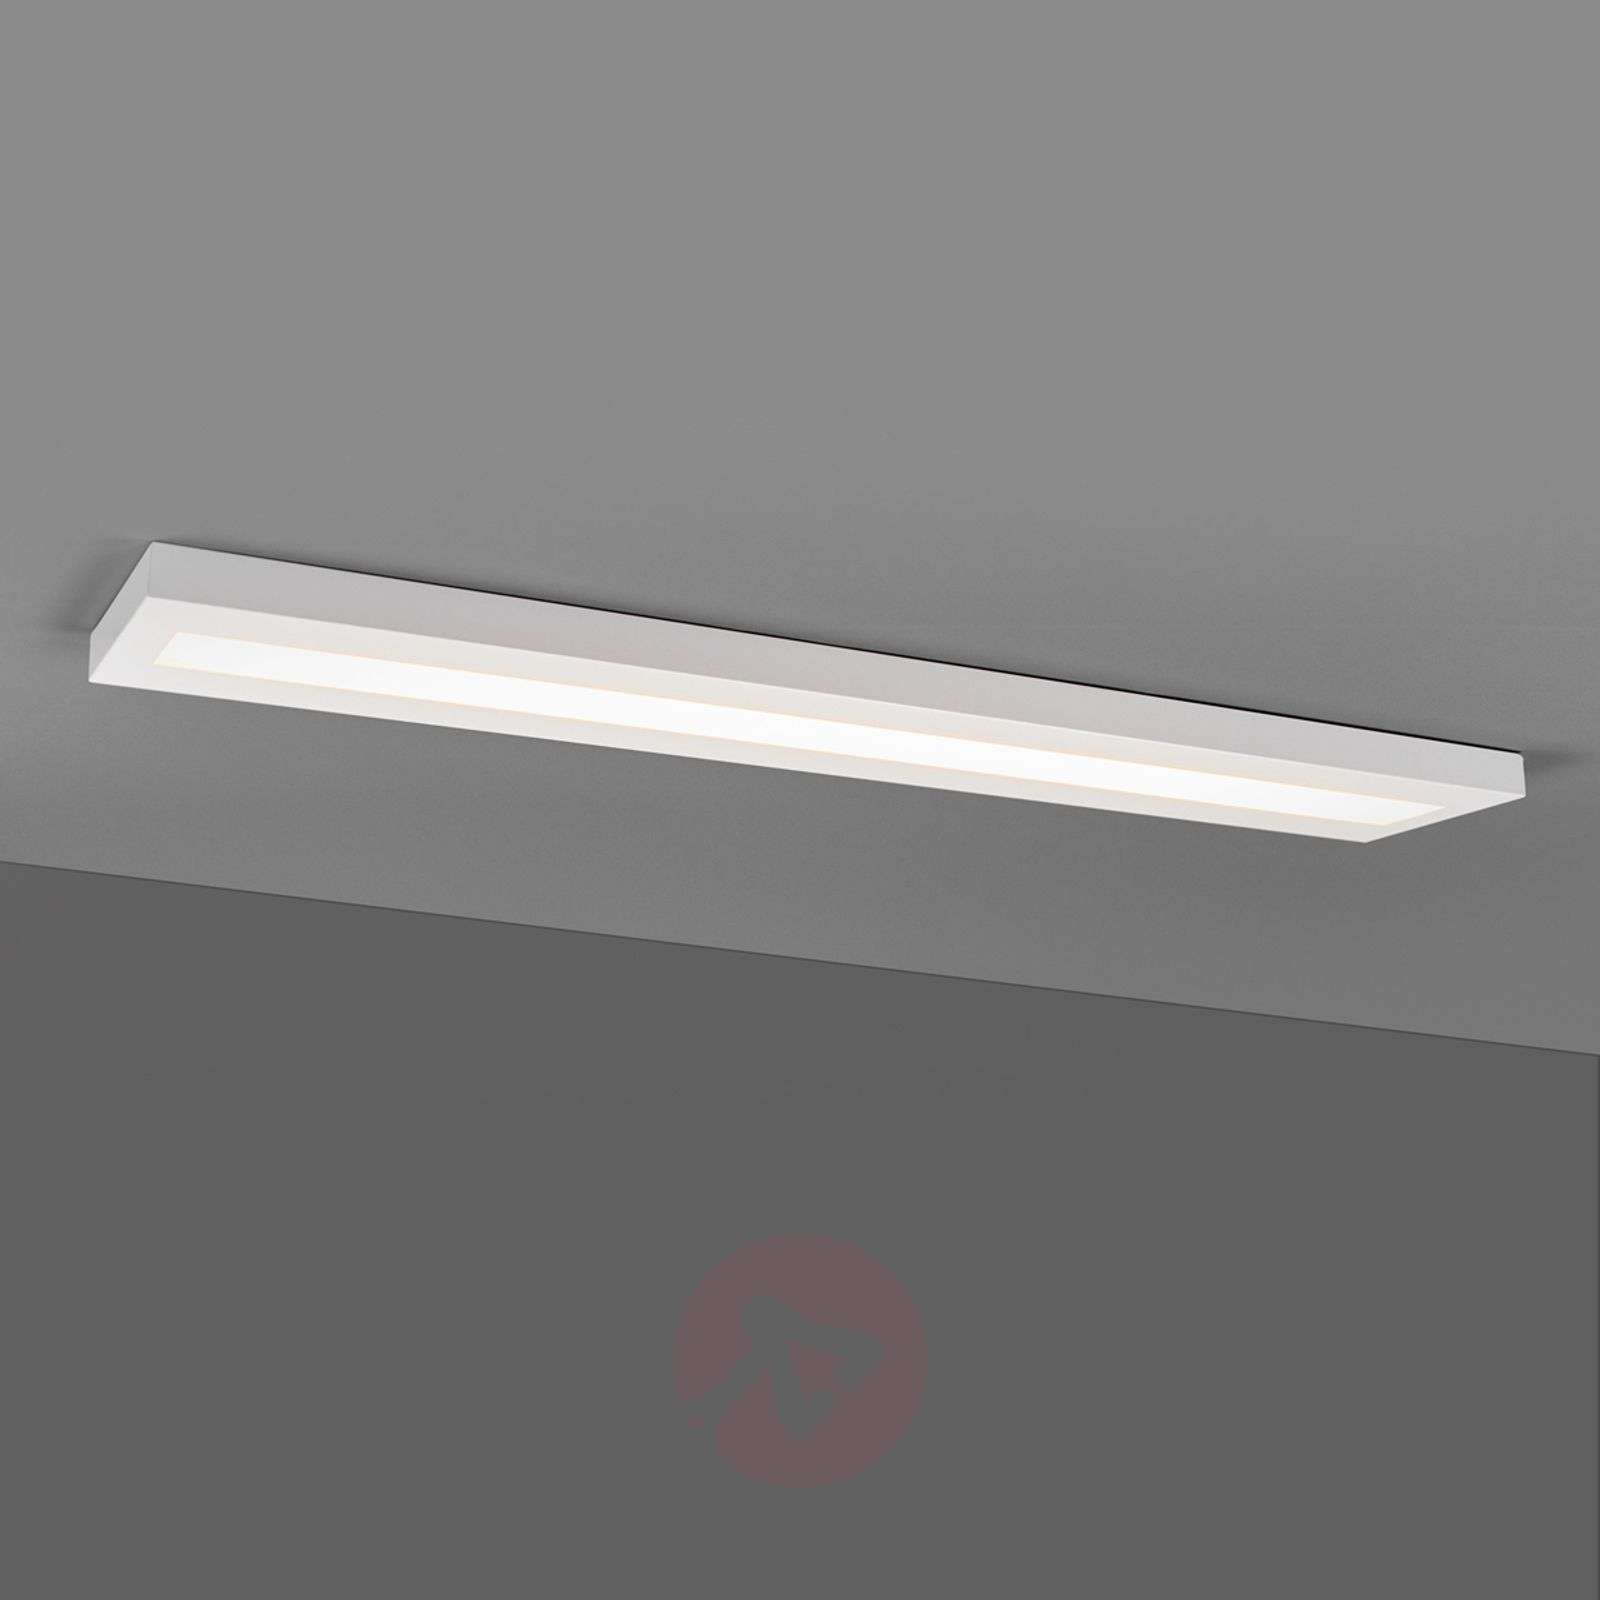 Plafoniere Osram : Acquista plafoniera led ultrapiatta 37 38w osram lampade.it